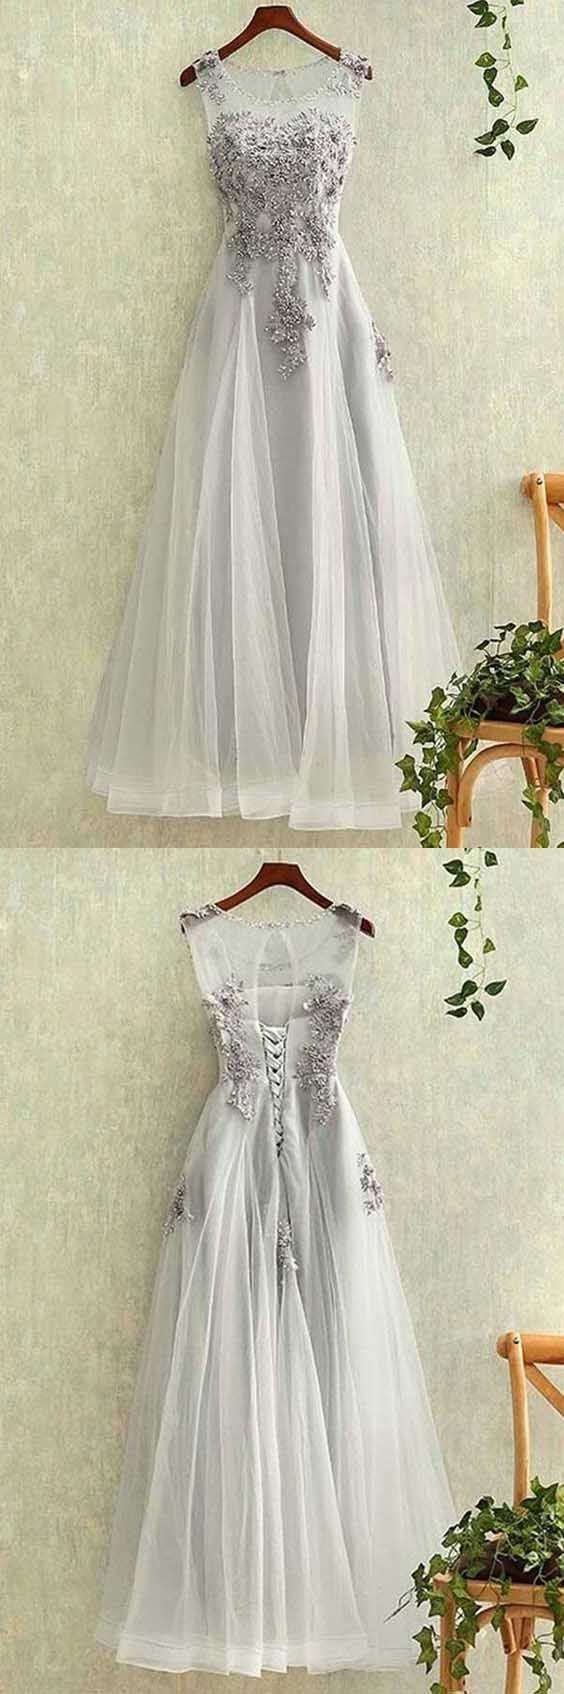 Fetching prom dress elegant tulle lace applique long prom